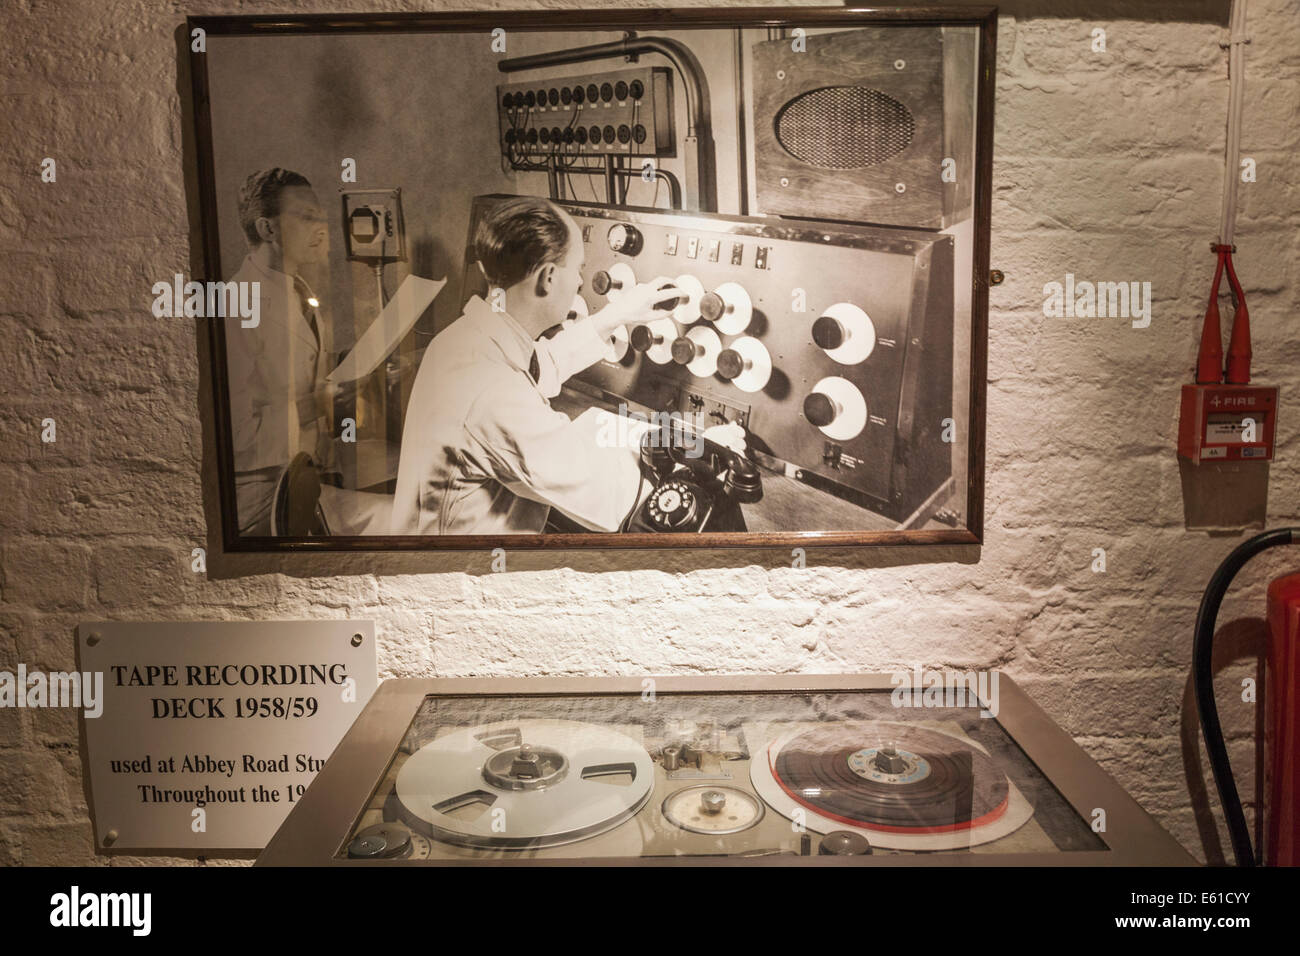 Merseyside, Liverpool, Albert Dock, The Beatles Story, Exhibit of Tape Recording Deck Used at Abbey Road Studios - Stock Image